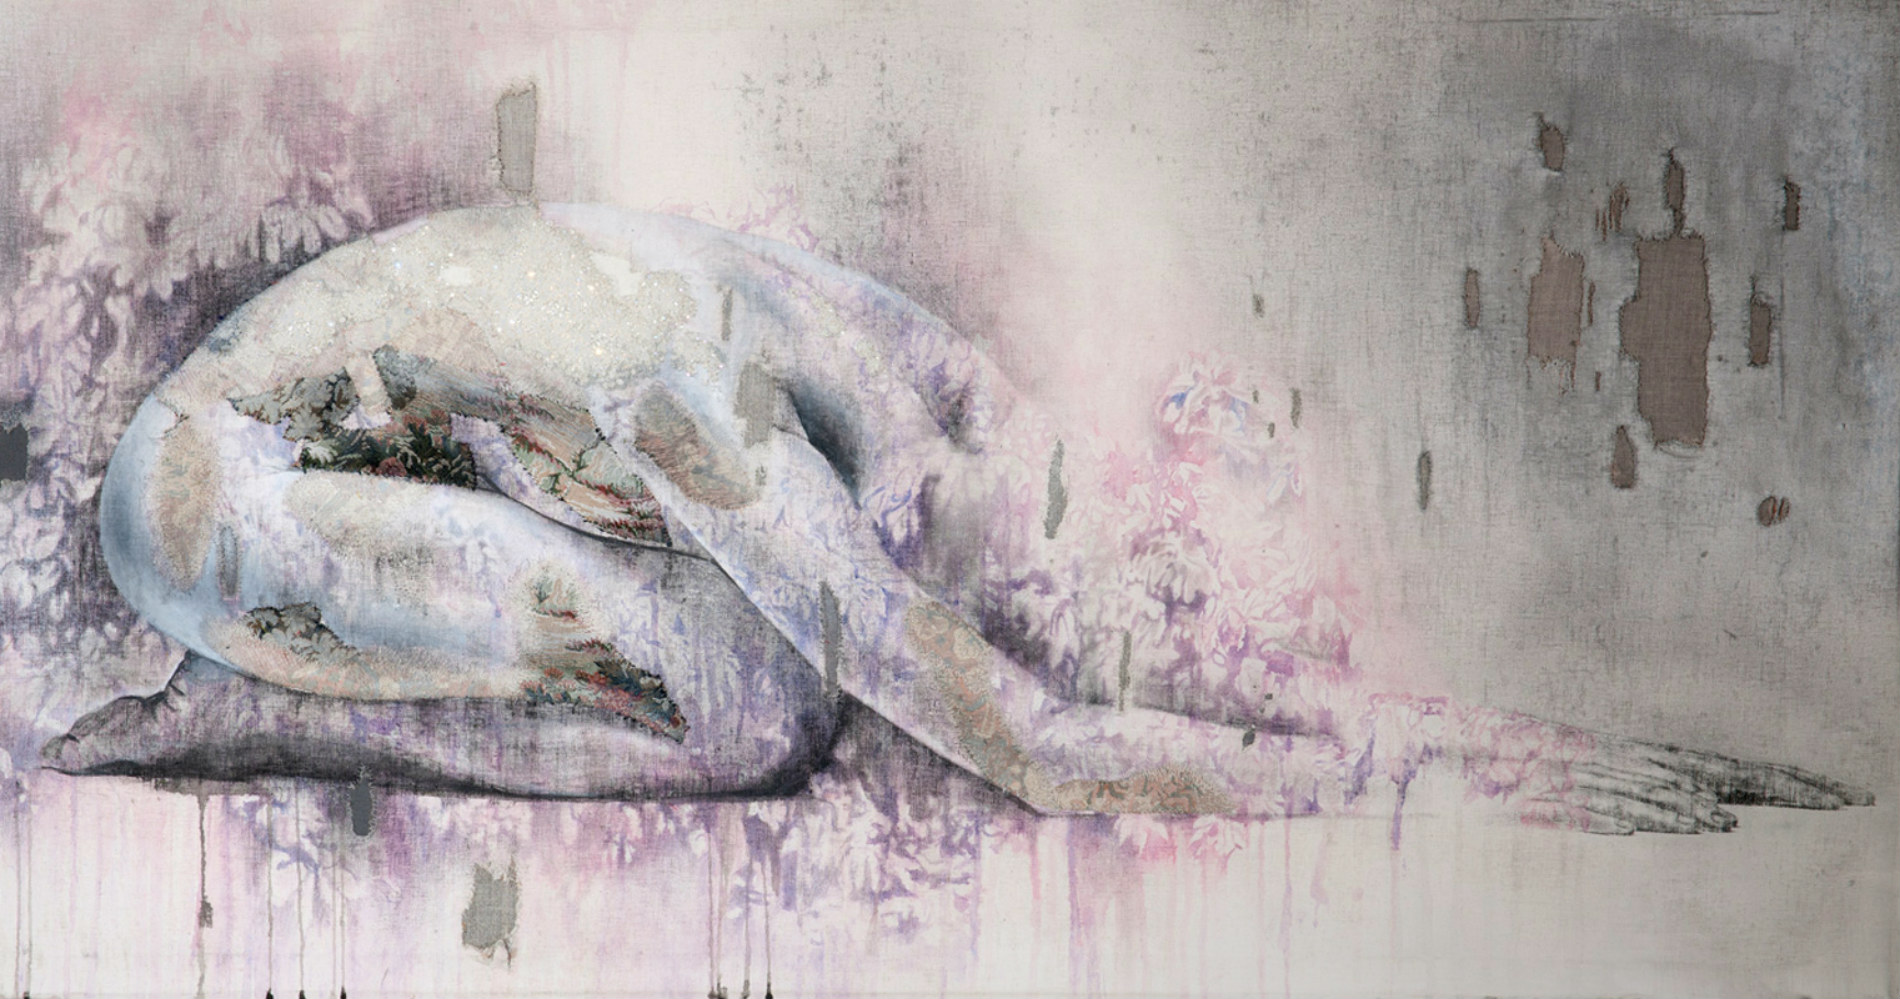 Subtle Paintings of the Body by Anne Von Freyburg